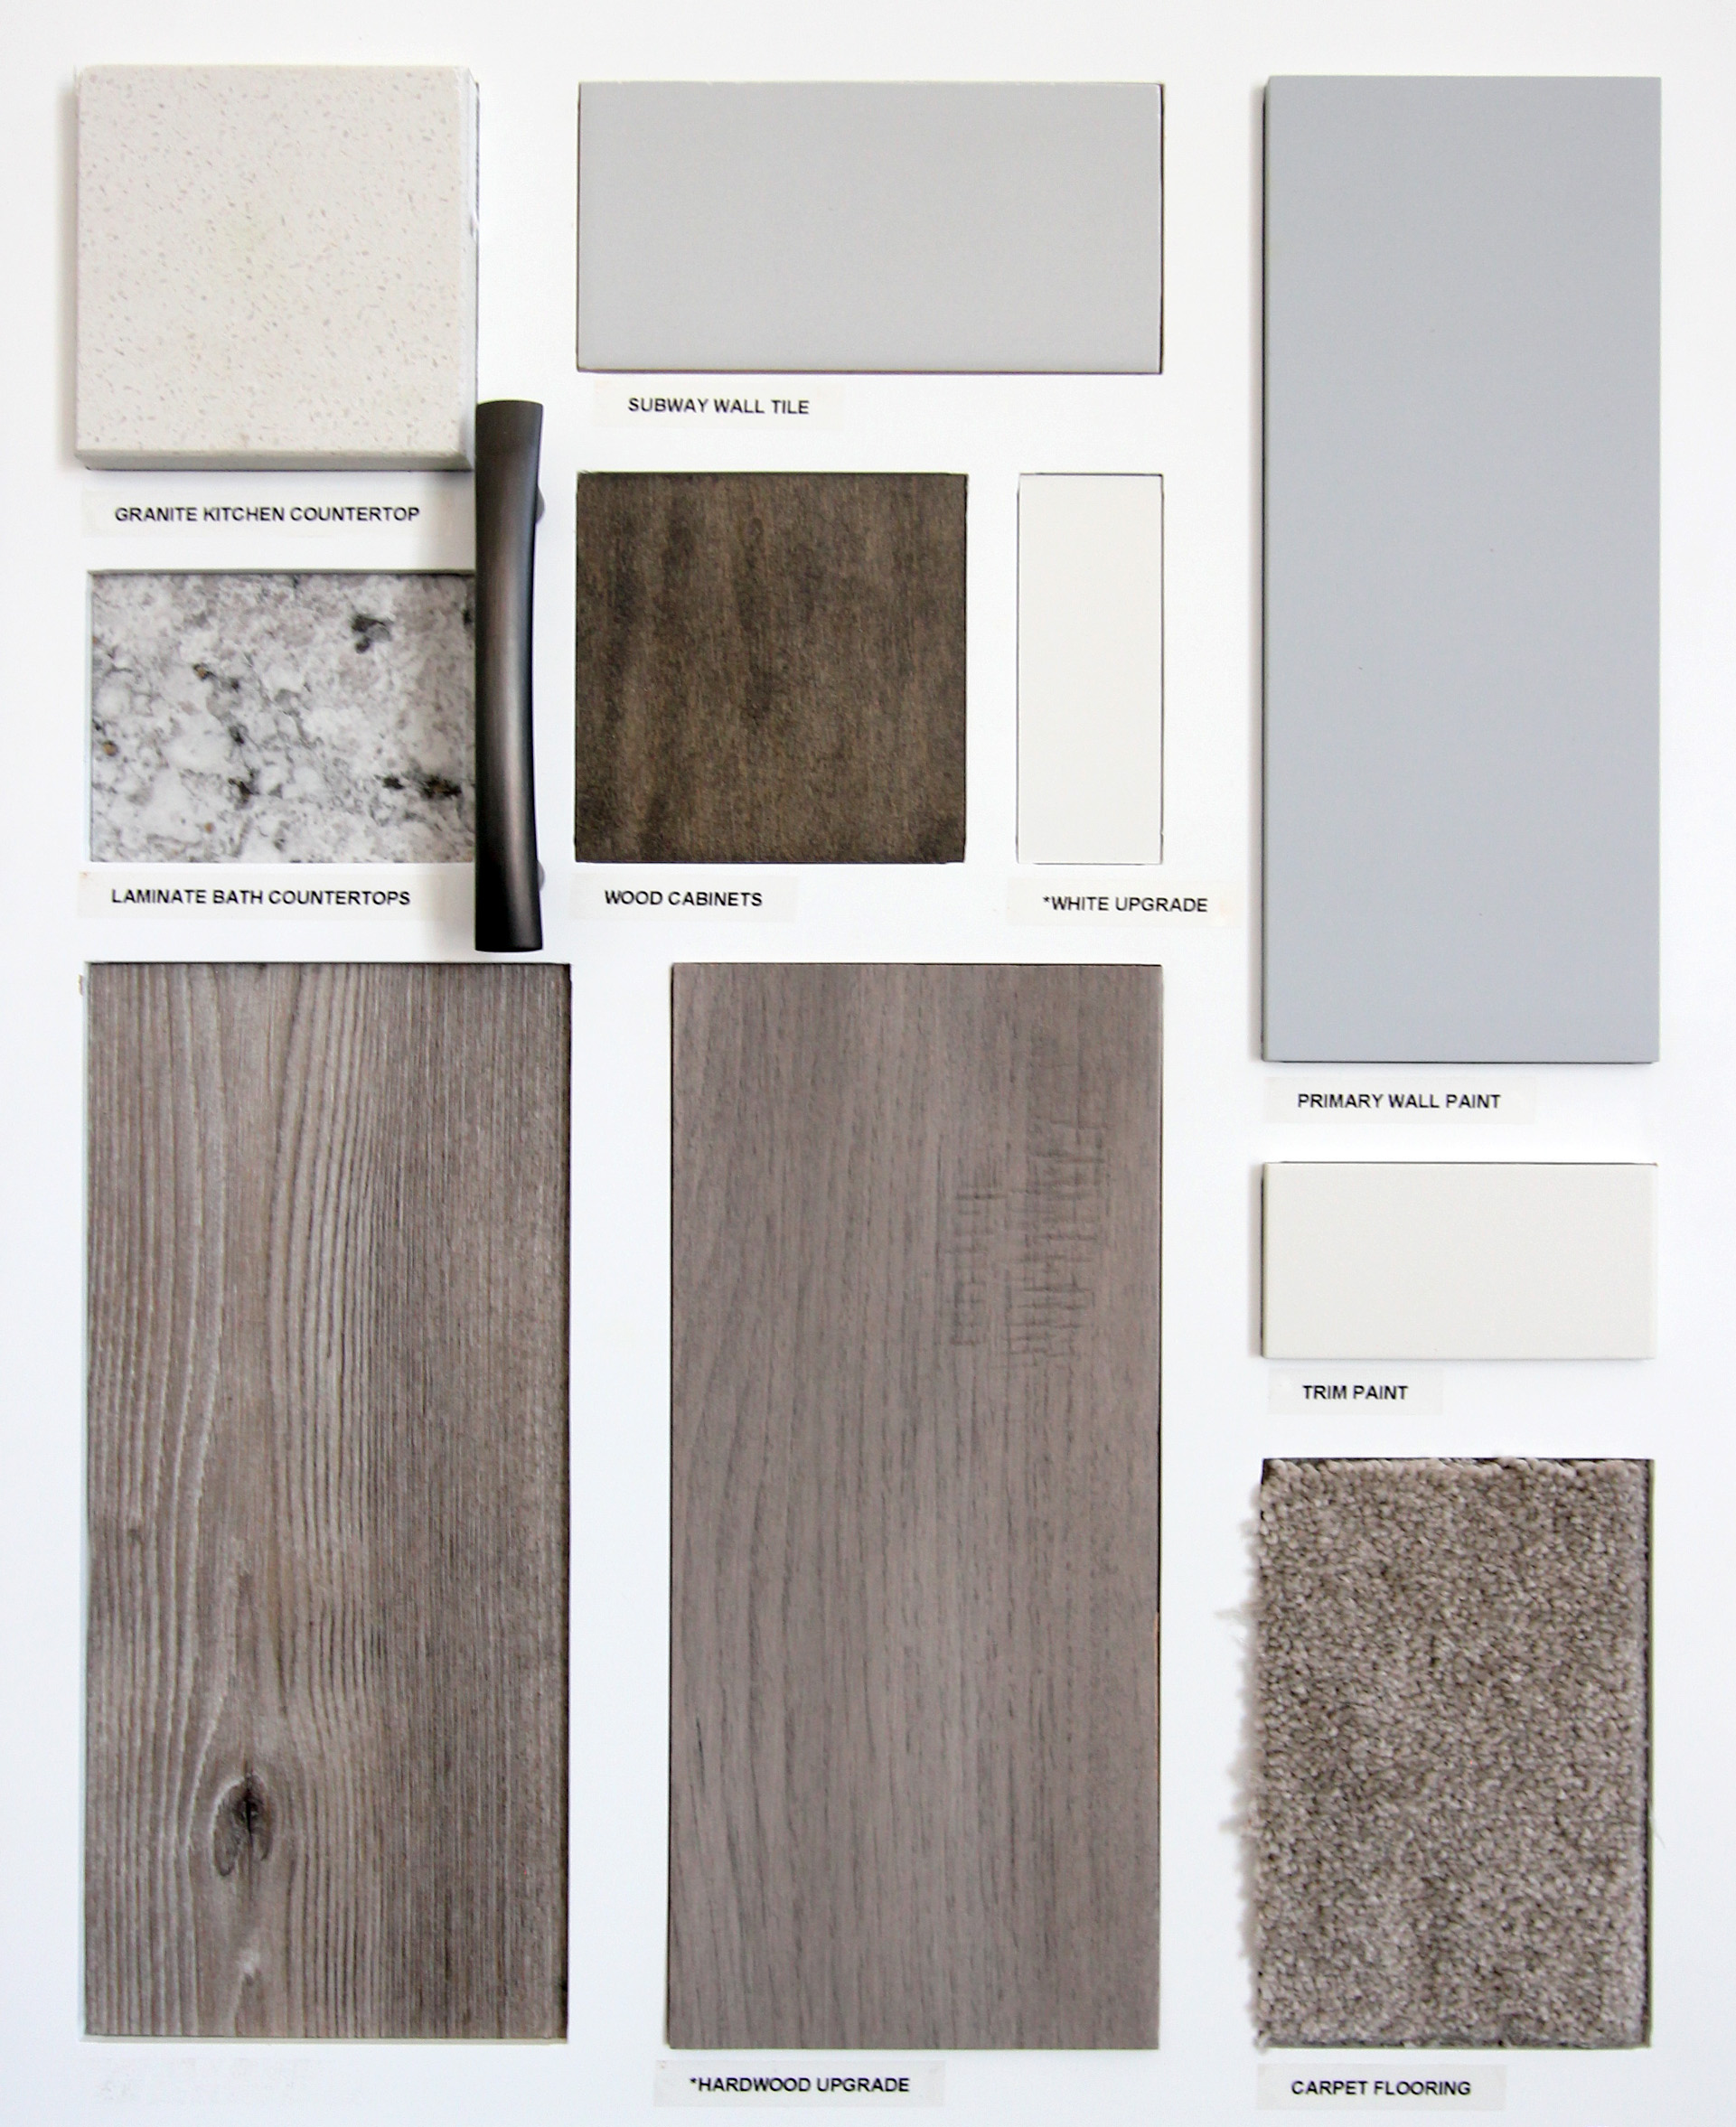 Coastal - The Canadian west coast provides inspiration for this cool palette of greys. Pebble tones create a neutral scheme to reflect calm light throughout the home, referencing the muted coastal skies.